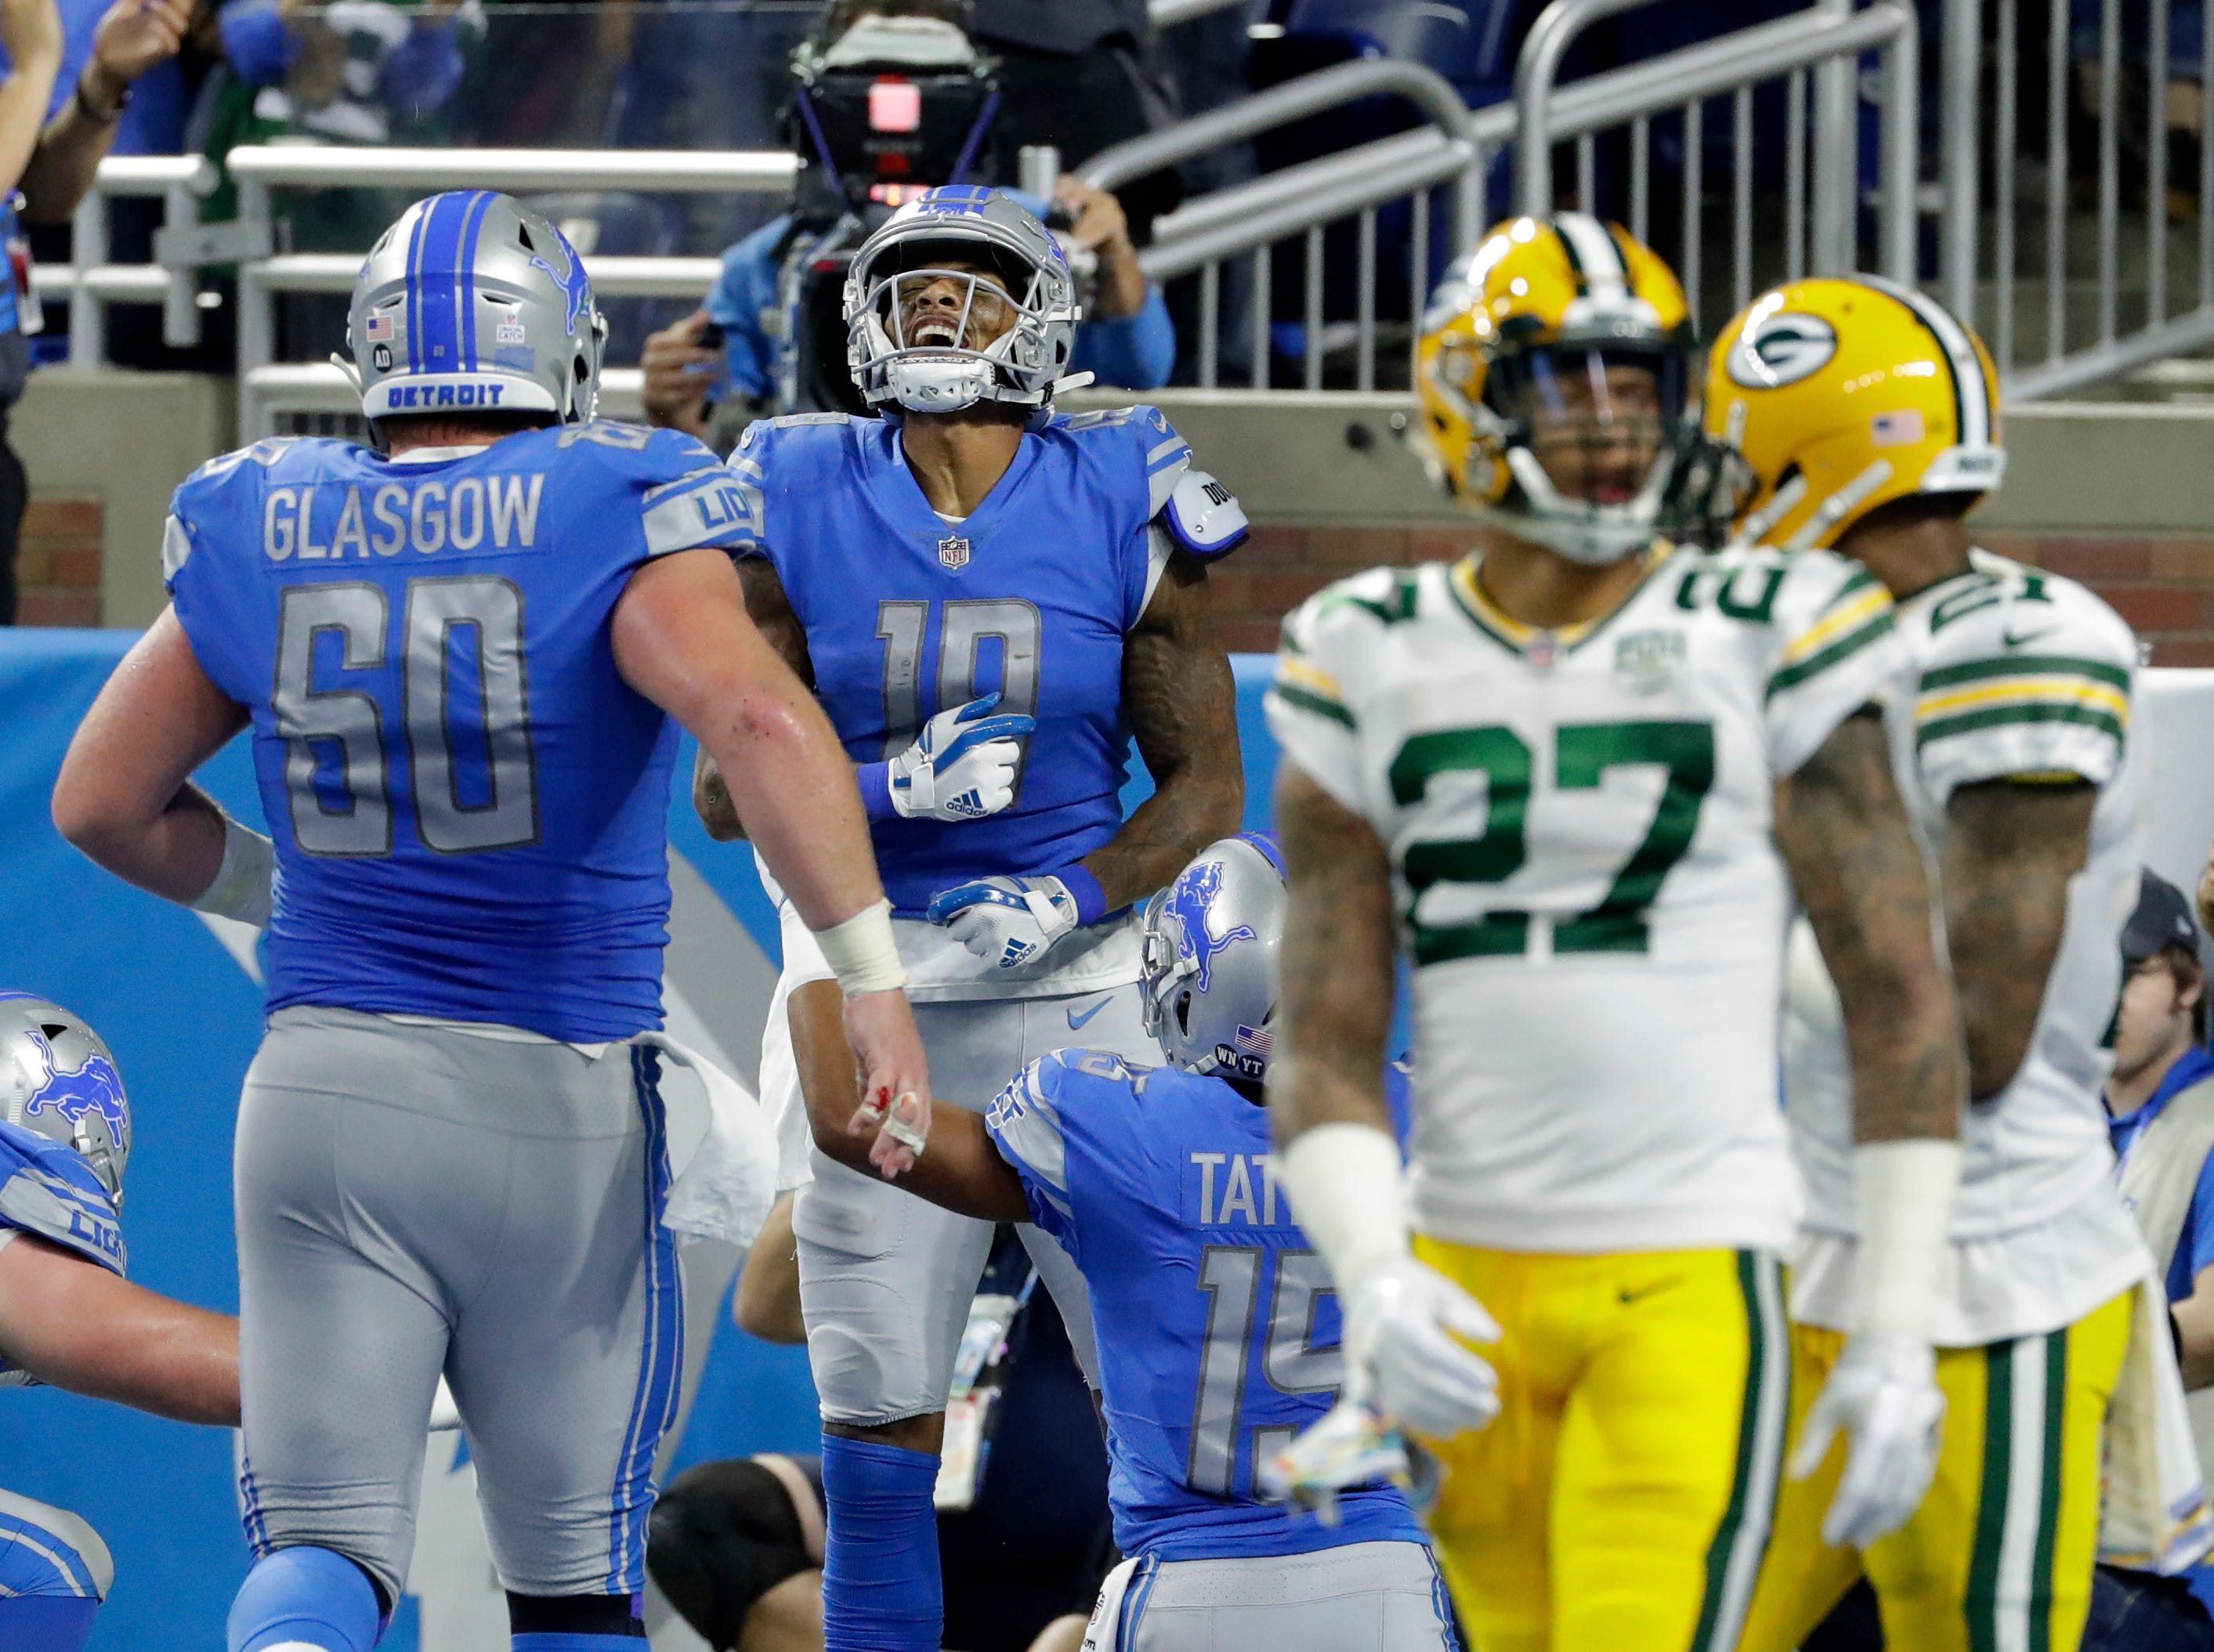 \Detroit Lions wide receiver Kenny Golladay (19) celebrates a td while the Packers secondary appears lost during the Green Bay Packers 31-23 loss to the Detroit Lions at Ford Field, Detroit, Sunday, October 7, 2018.   Rick Wood/Milwaukee Journal Sentinel. USA